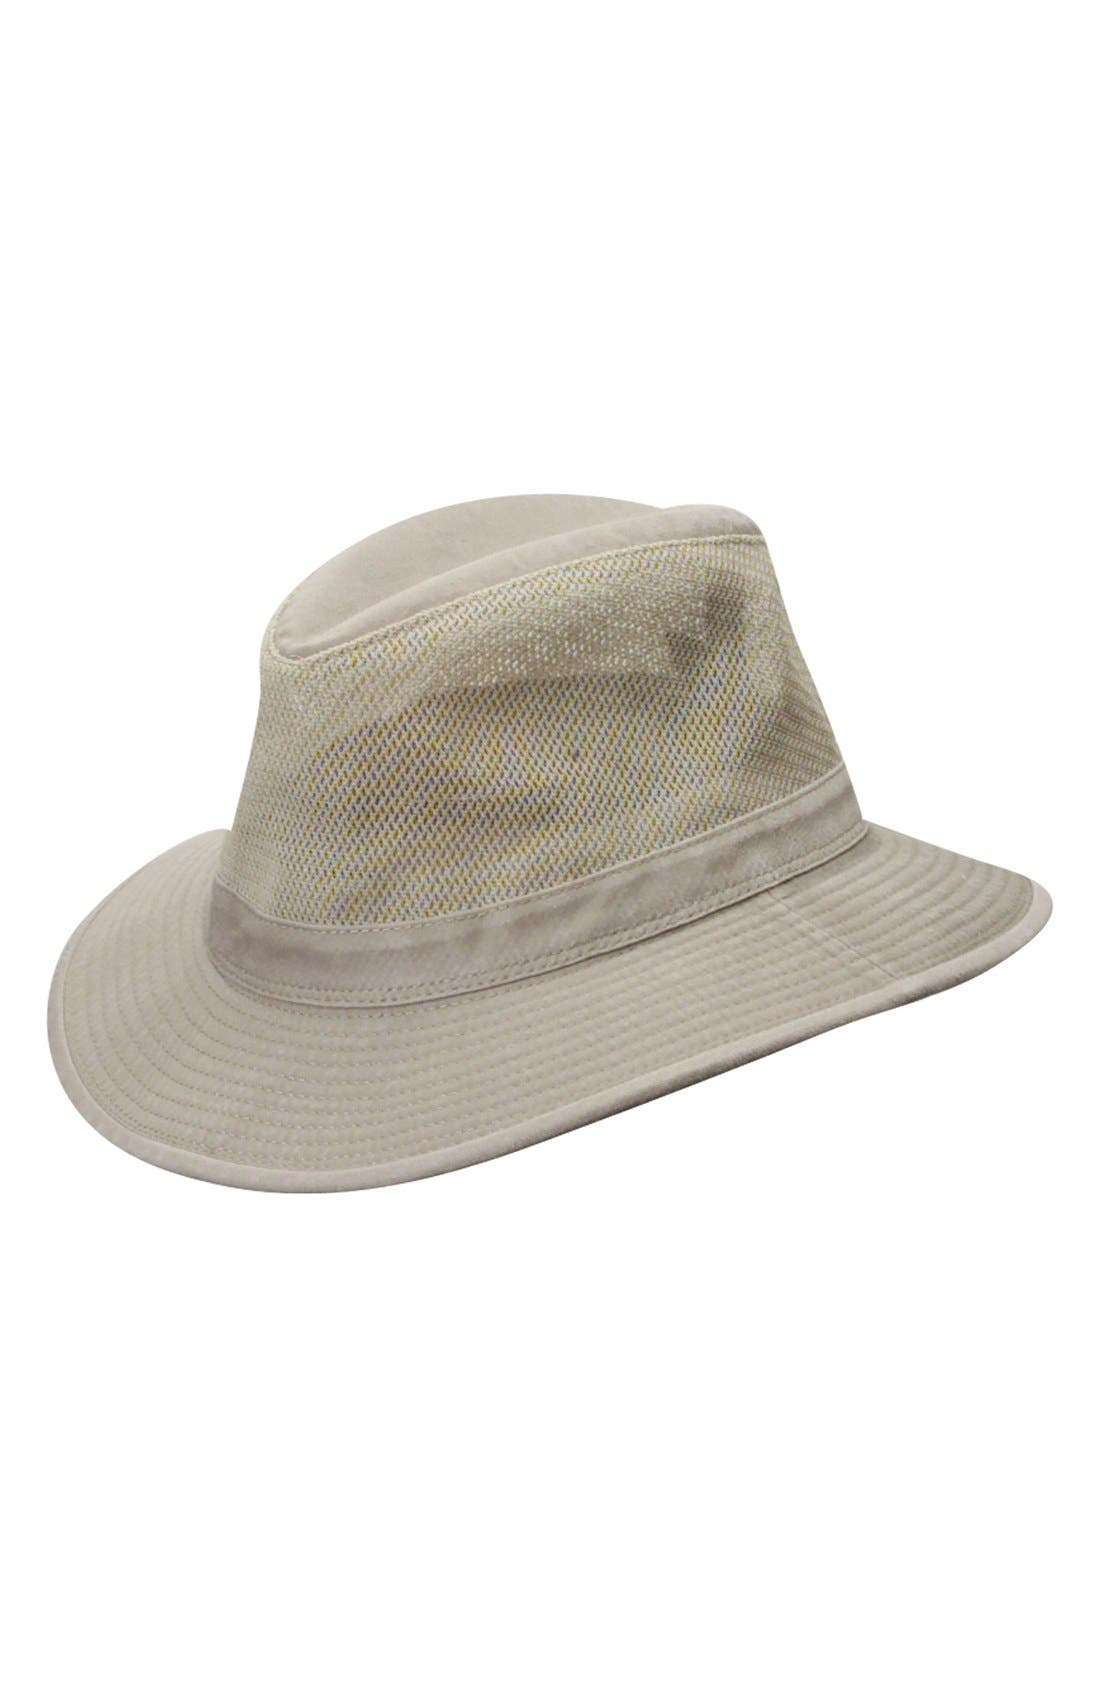 Washed Twill & Mesh Safari Hat,                         Main,                         color, Khaki